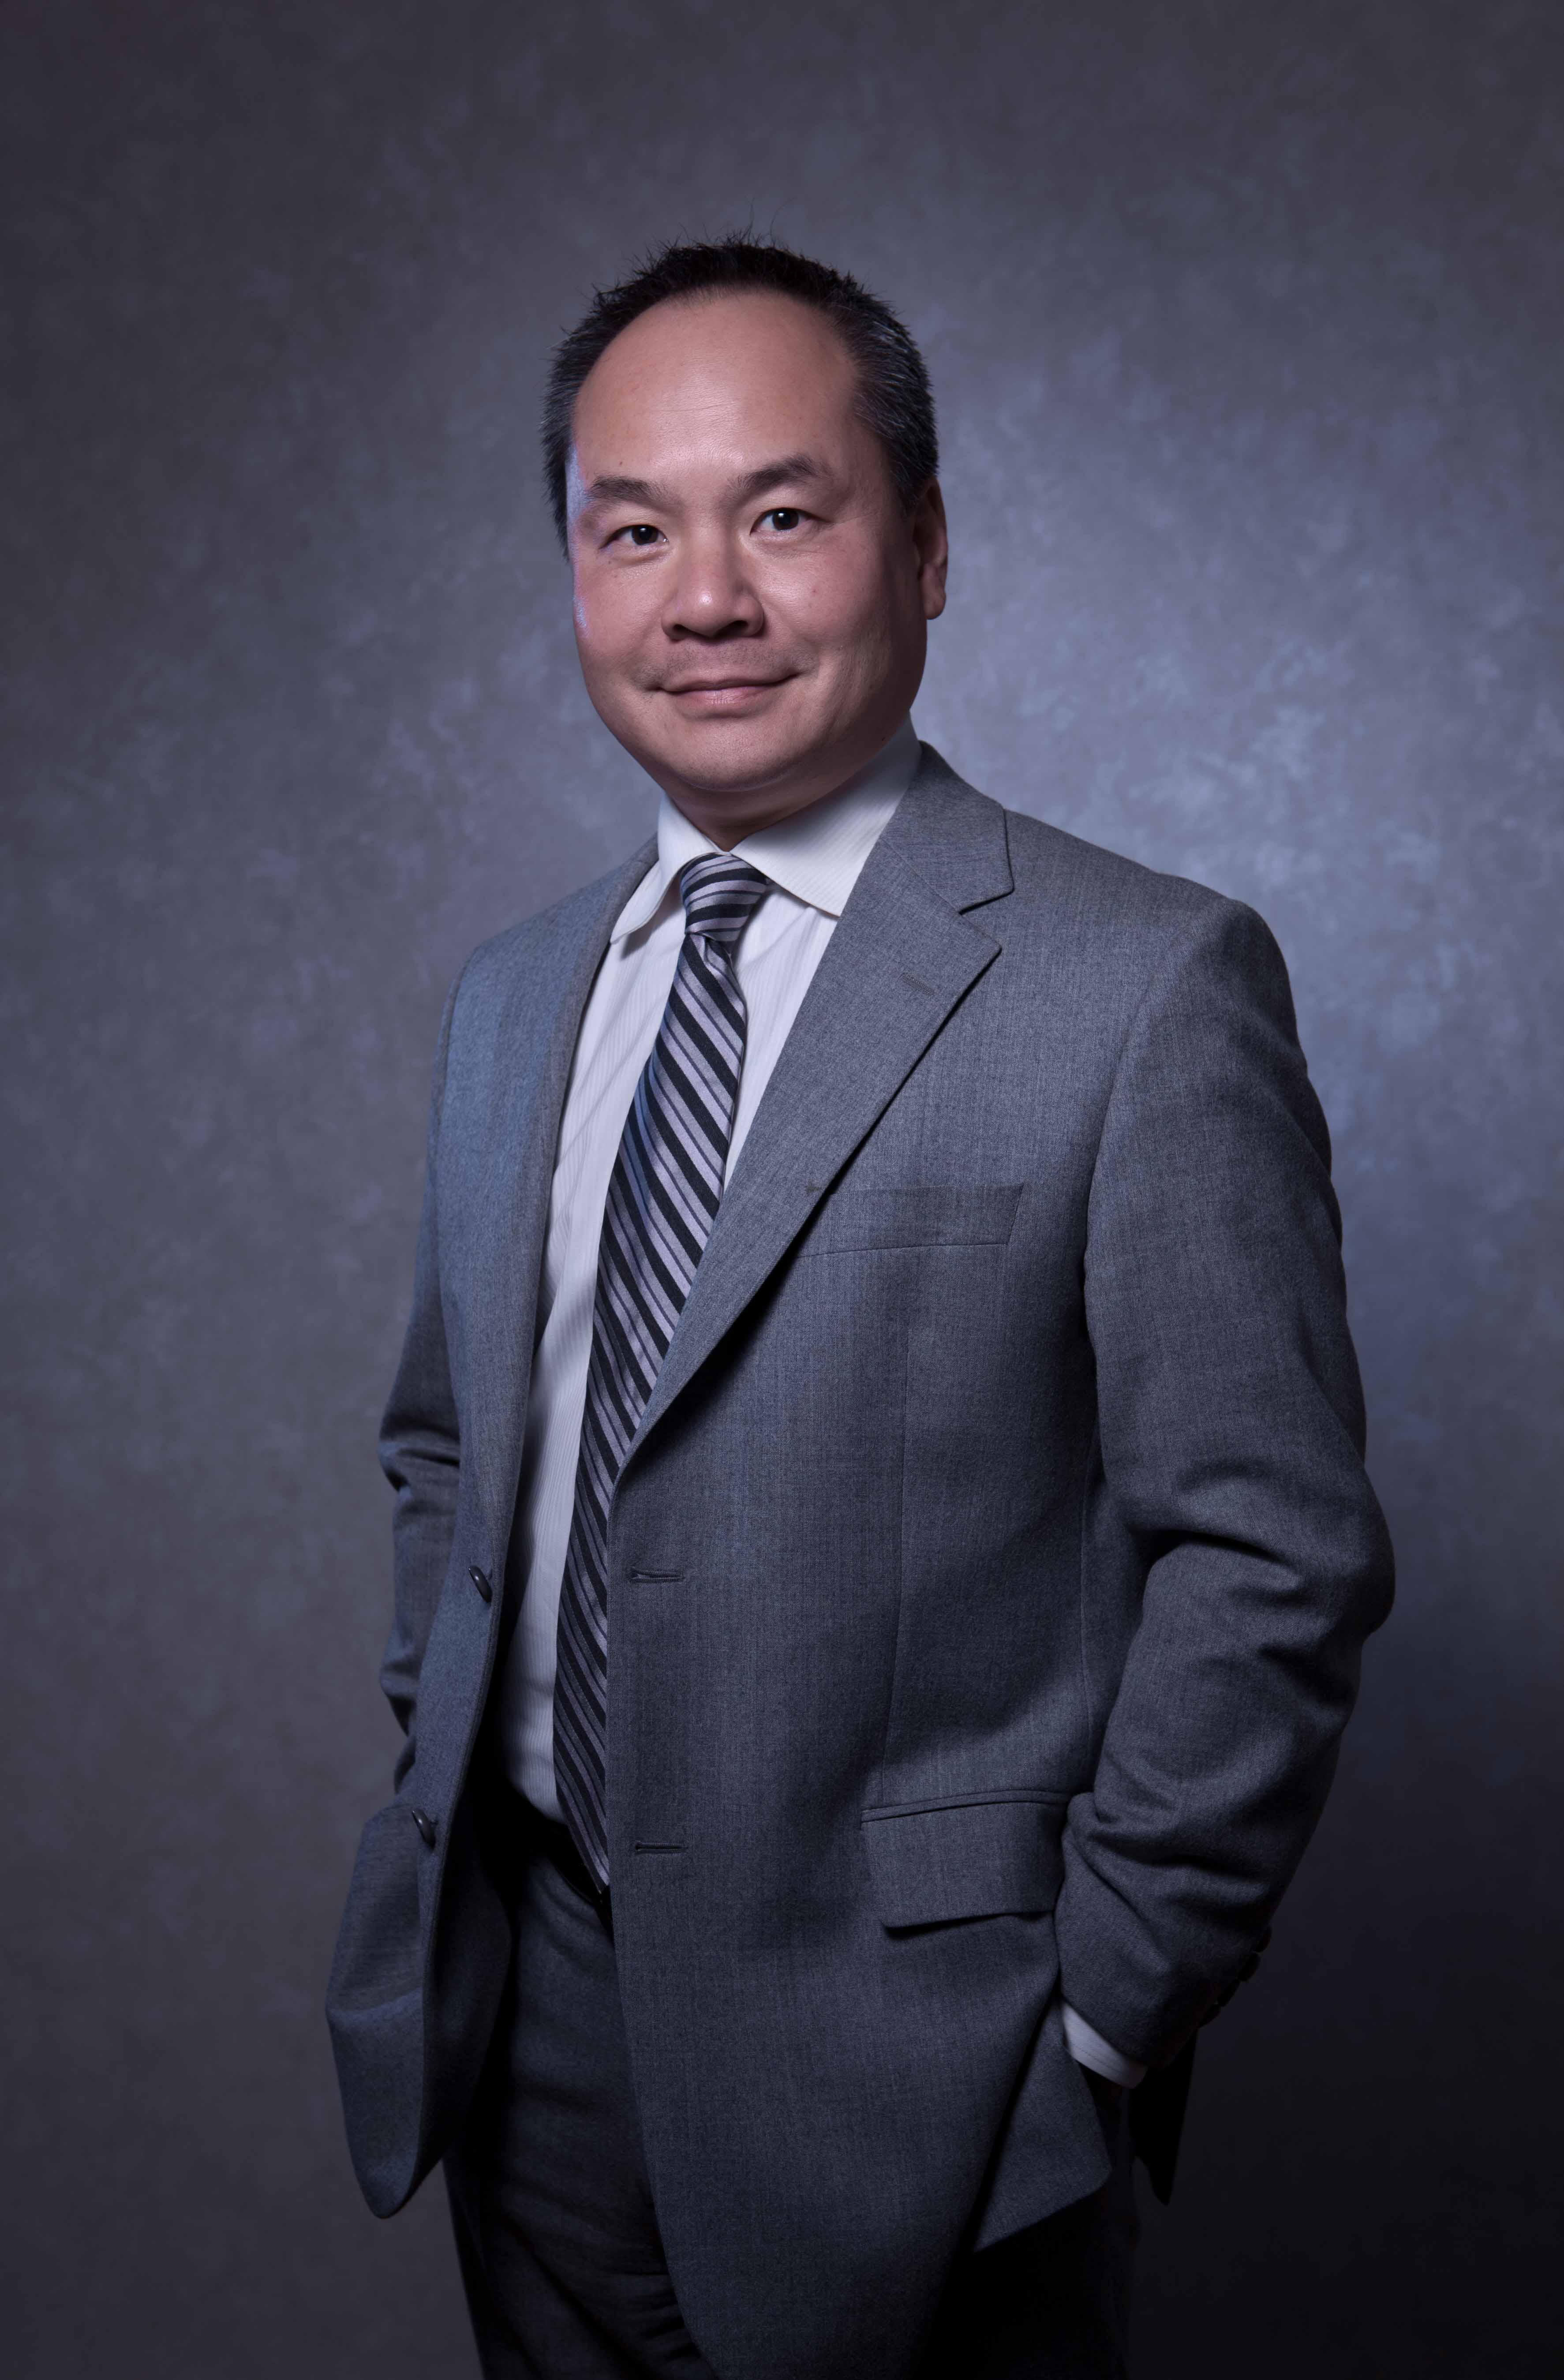 Tony Joe, Realtor